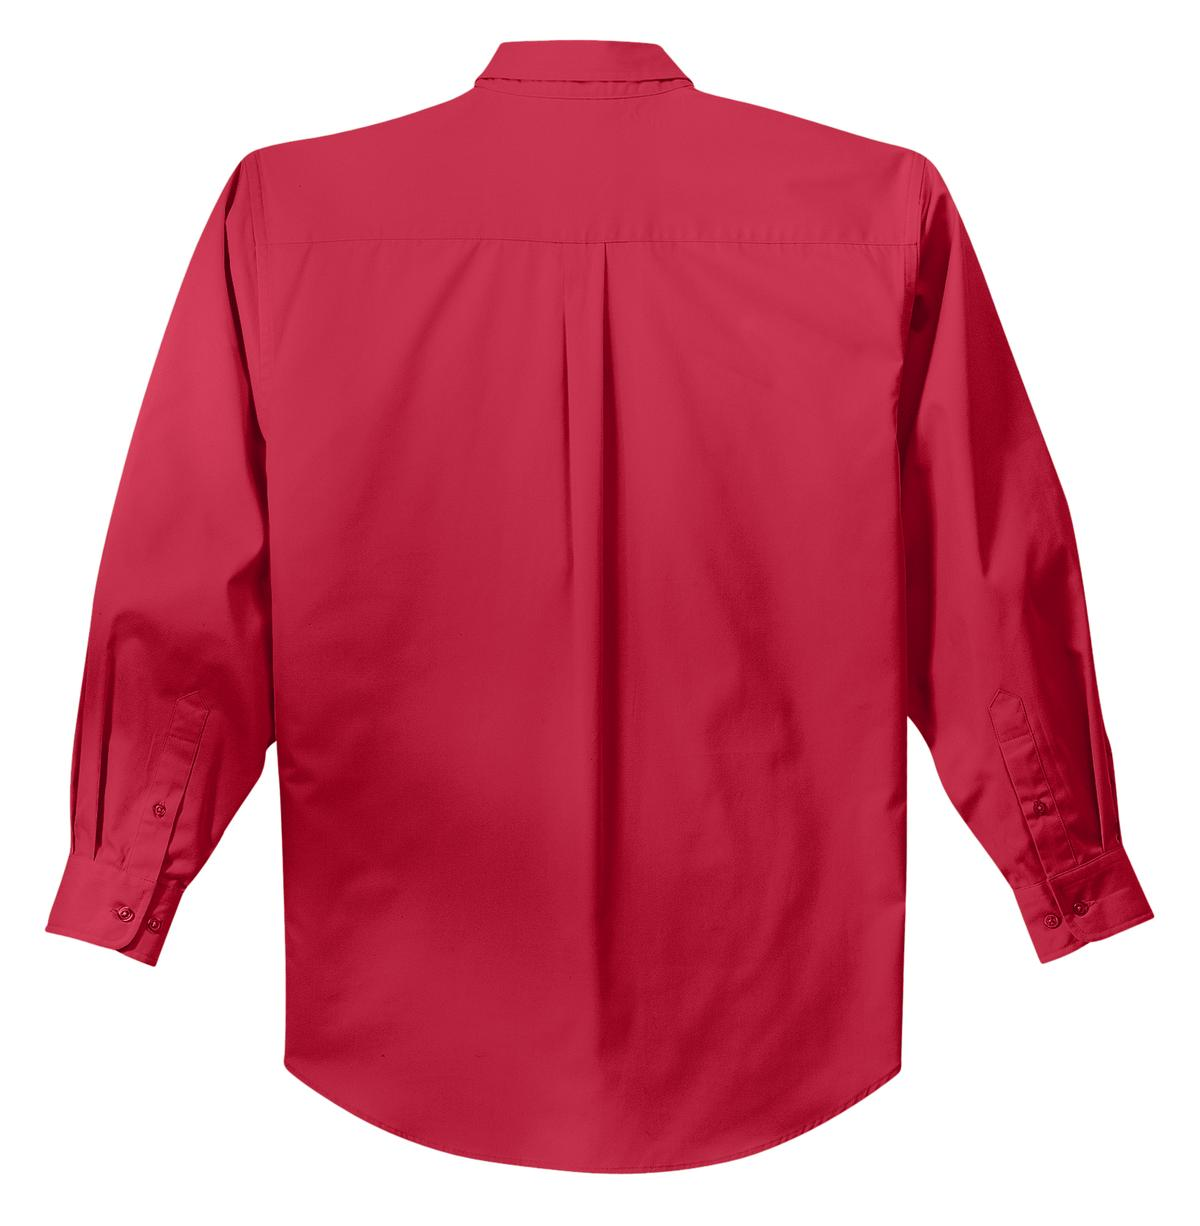 Mafoose Men's Tall Long Sleeve Easy Care Shirt Red/ Light Stone-Back